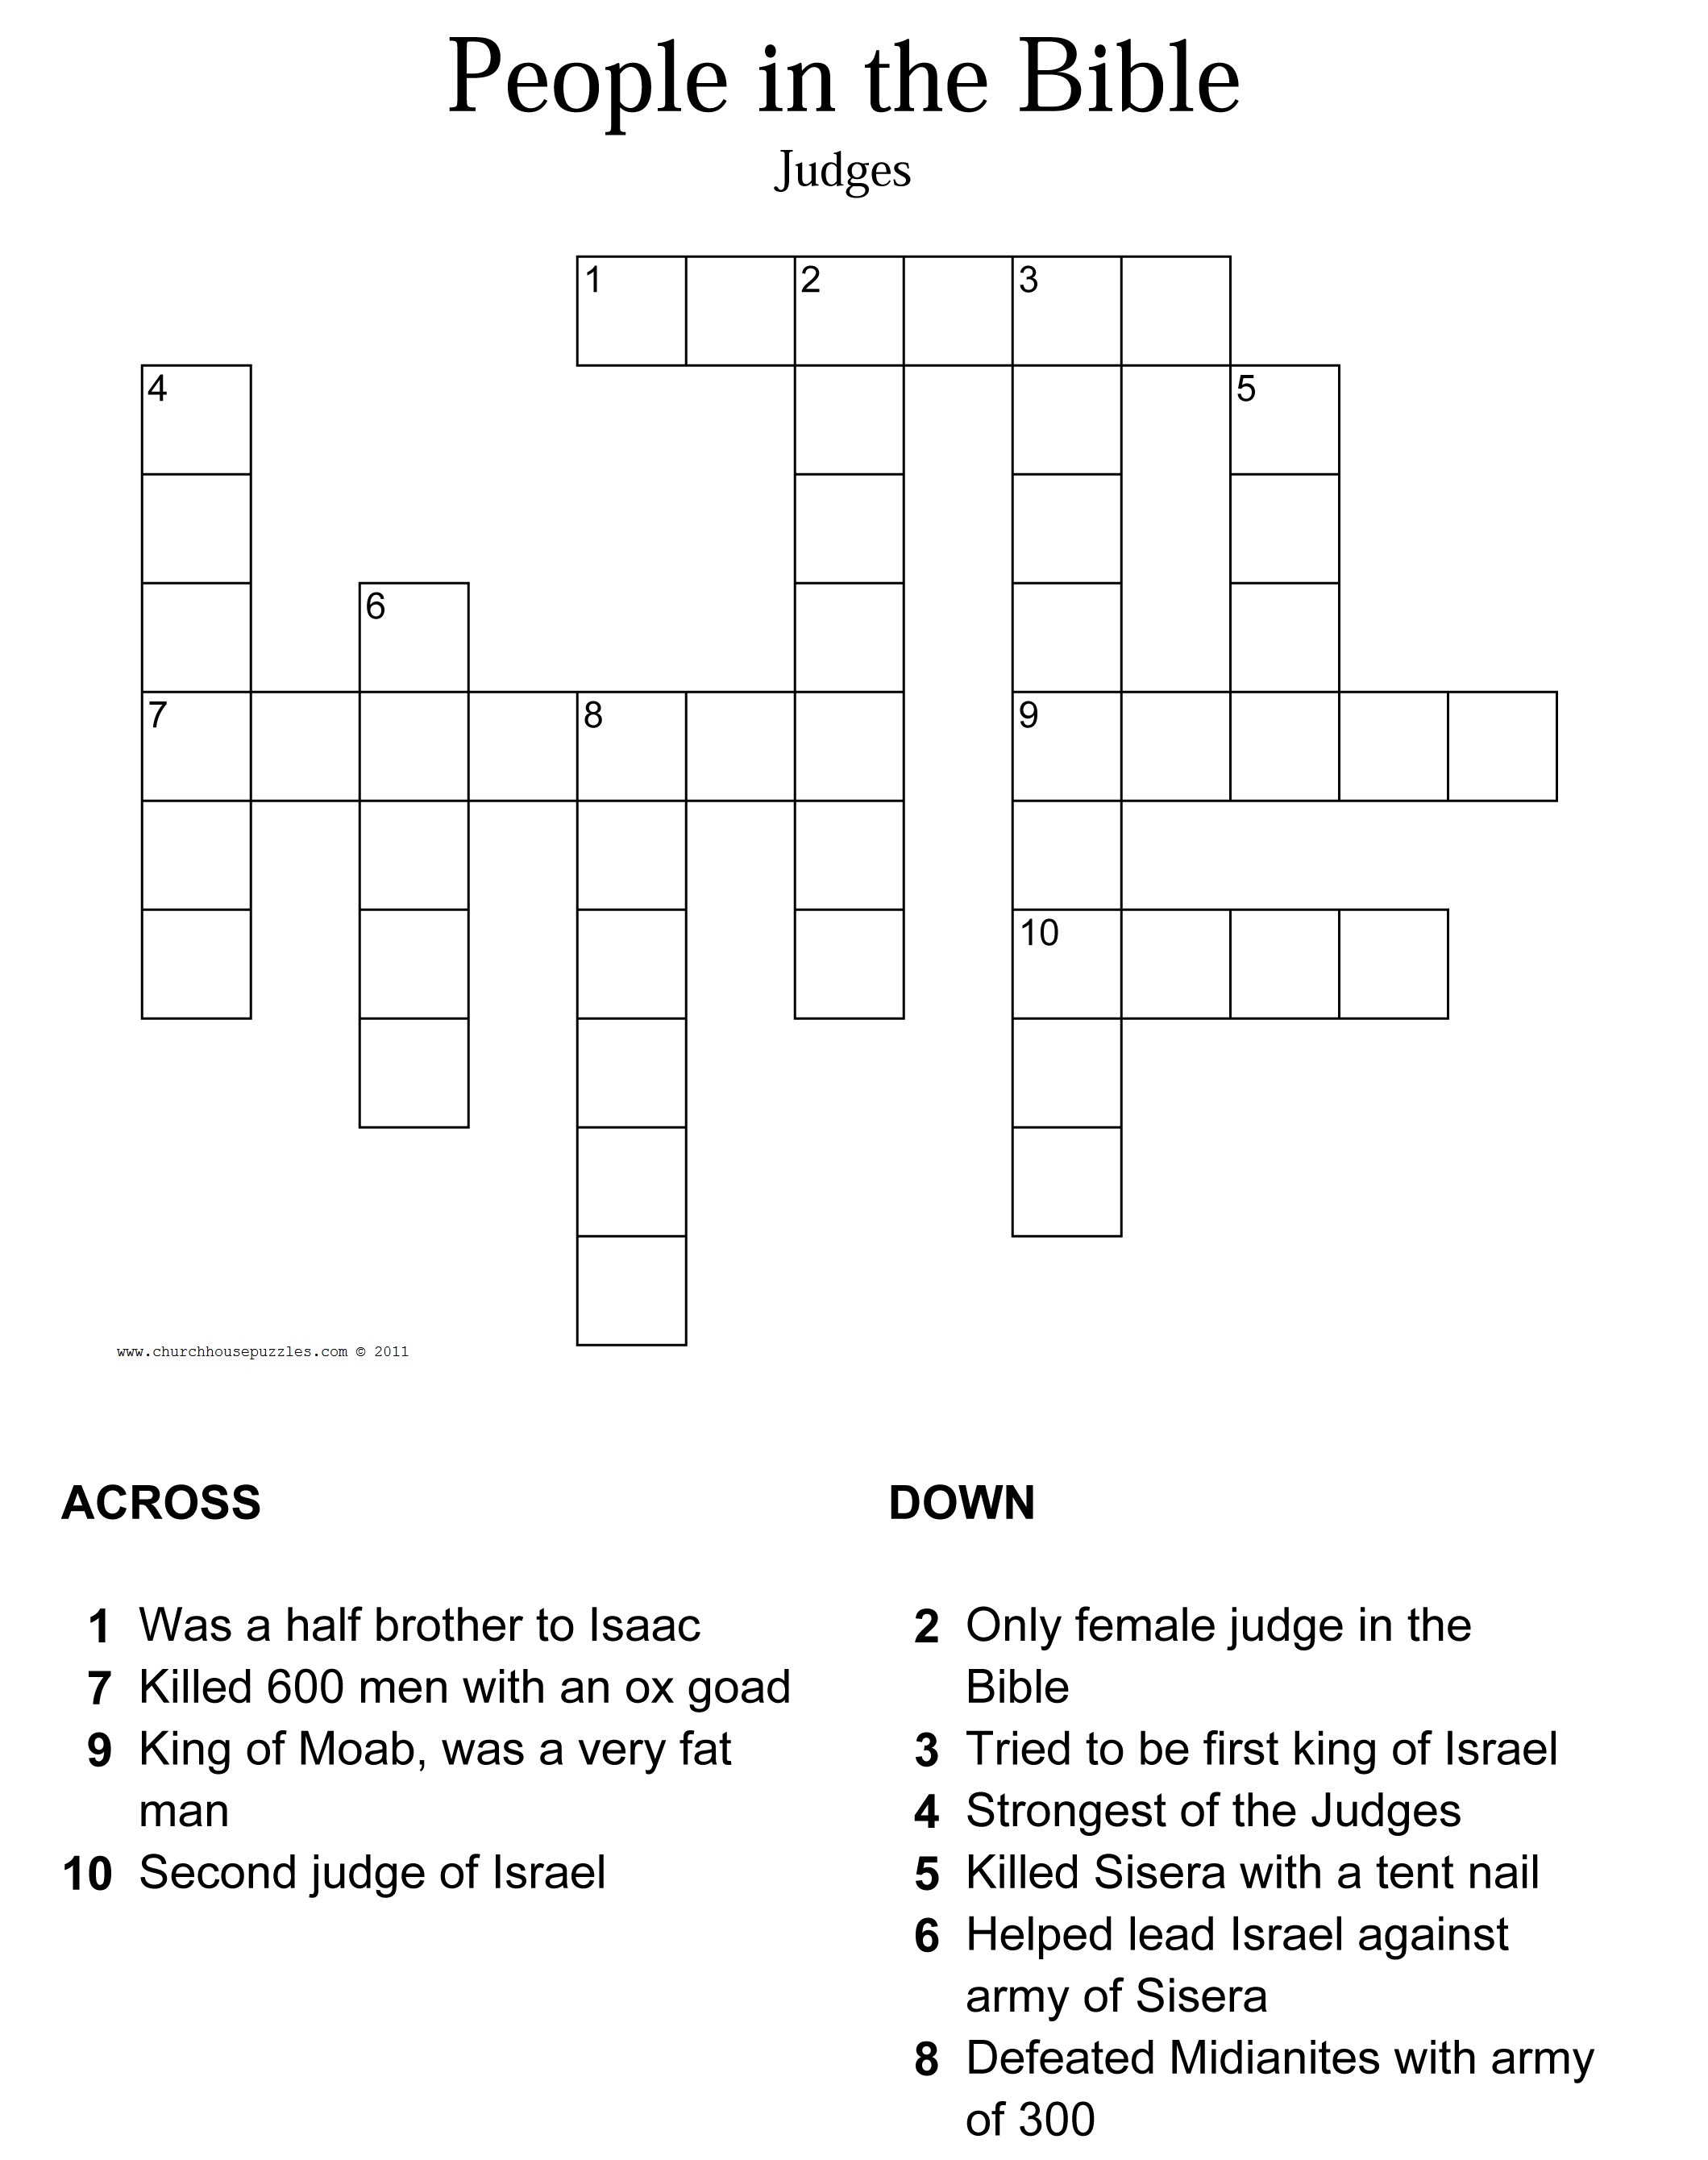 Judges Crossword Puzzle - Christian Crossword Puzzles Printable